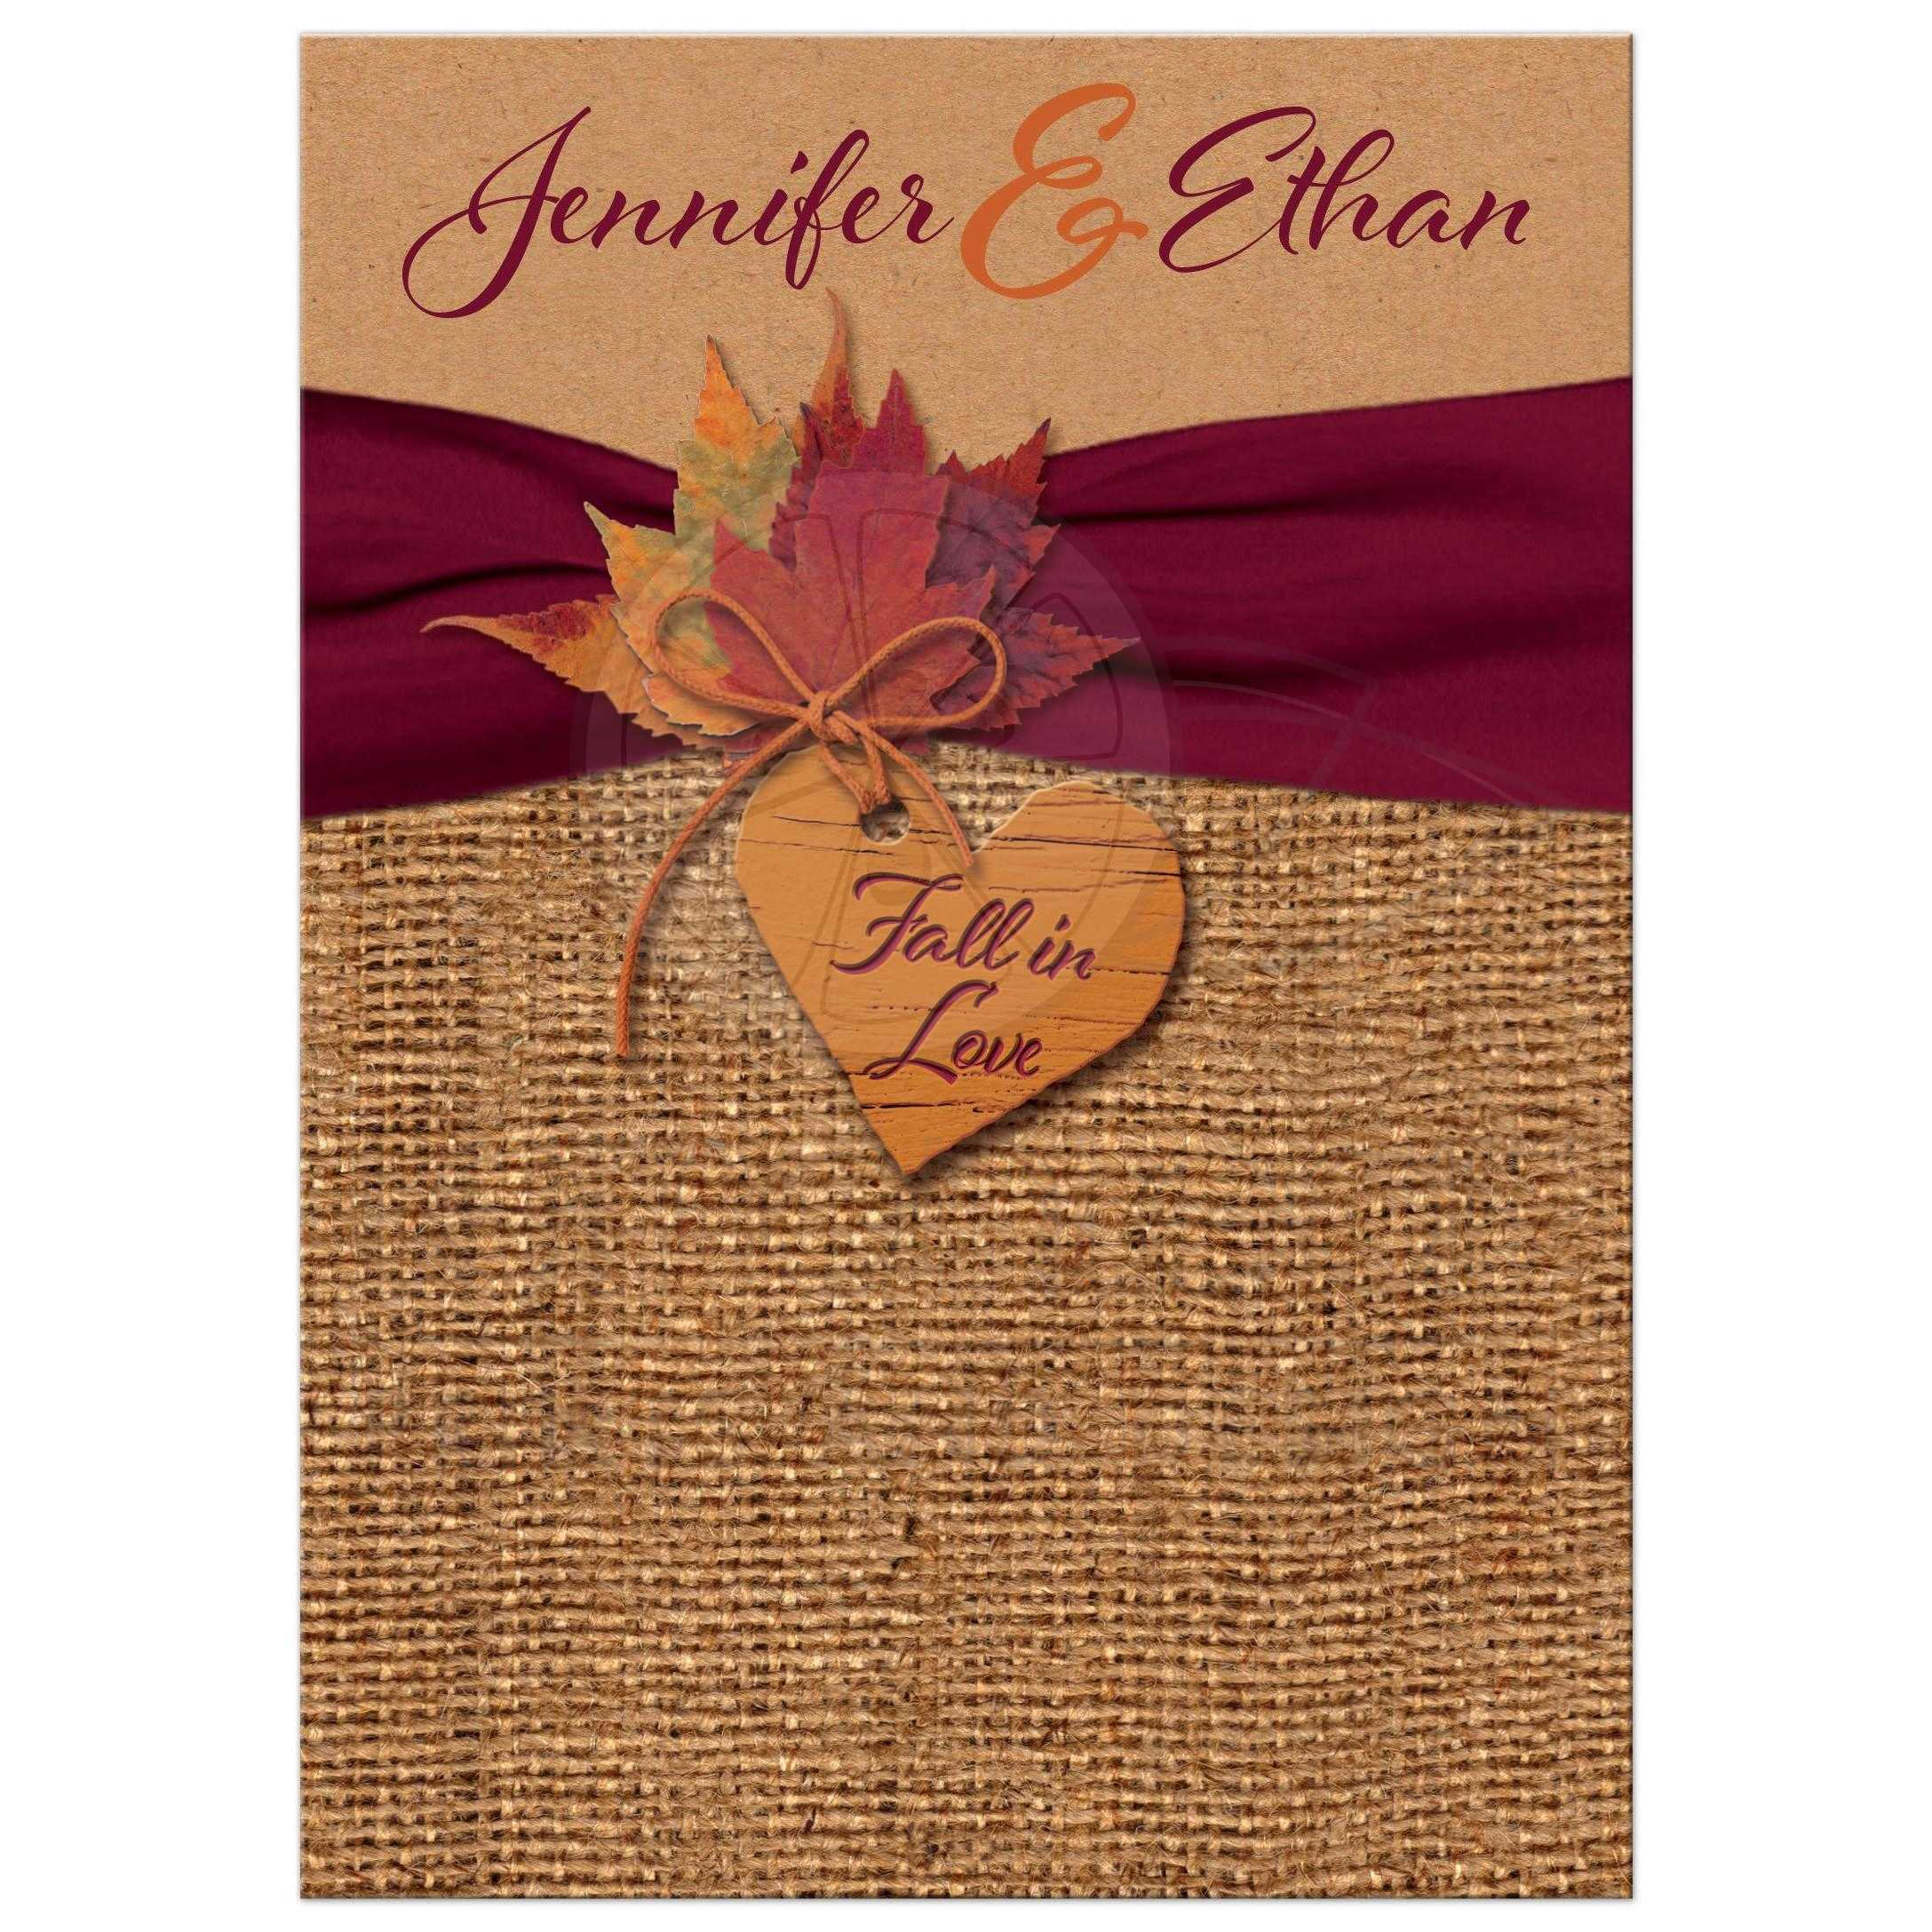 Great Rustic Burlap And Kraft Paper Wedding Invitations With A Burgundy Ribbon,  Orange Painted Wood Heart ...